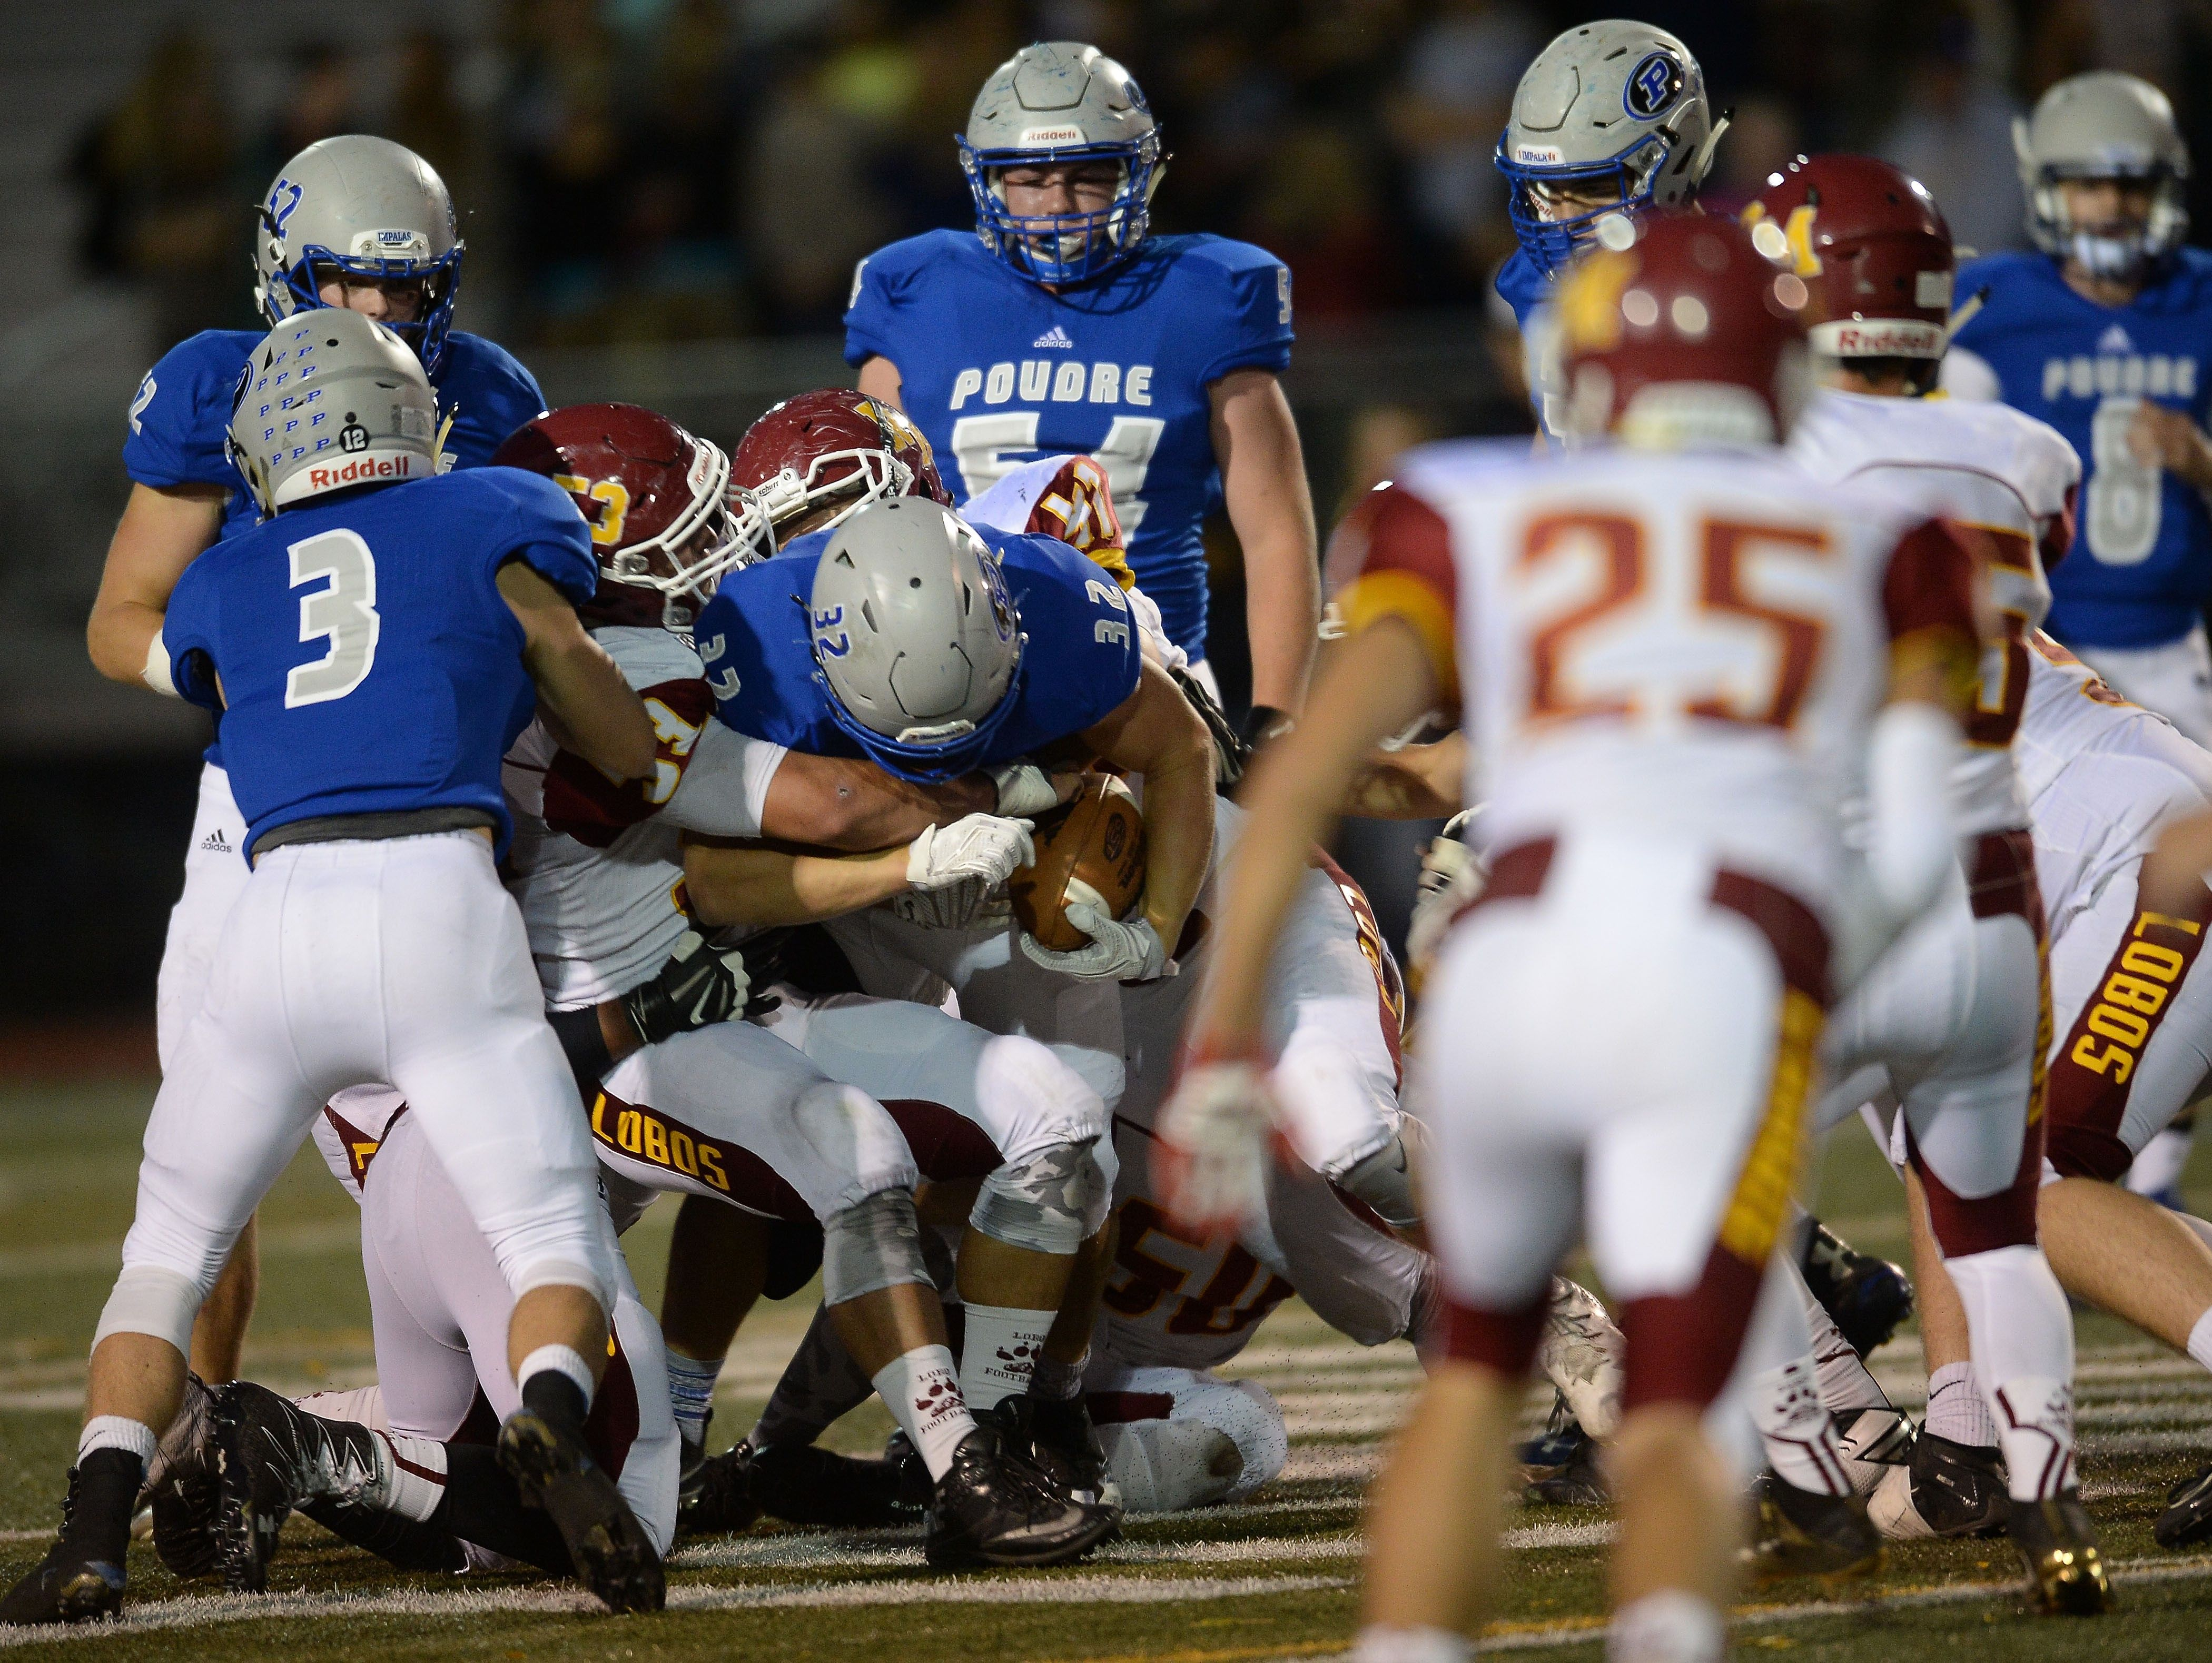 Rocky Mountain (0-3) and Poudre (2-2) battle at 7 p.m. Friday at French Field in a nonconference game.